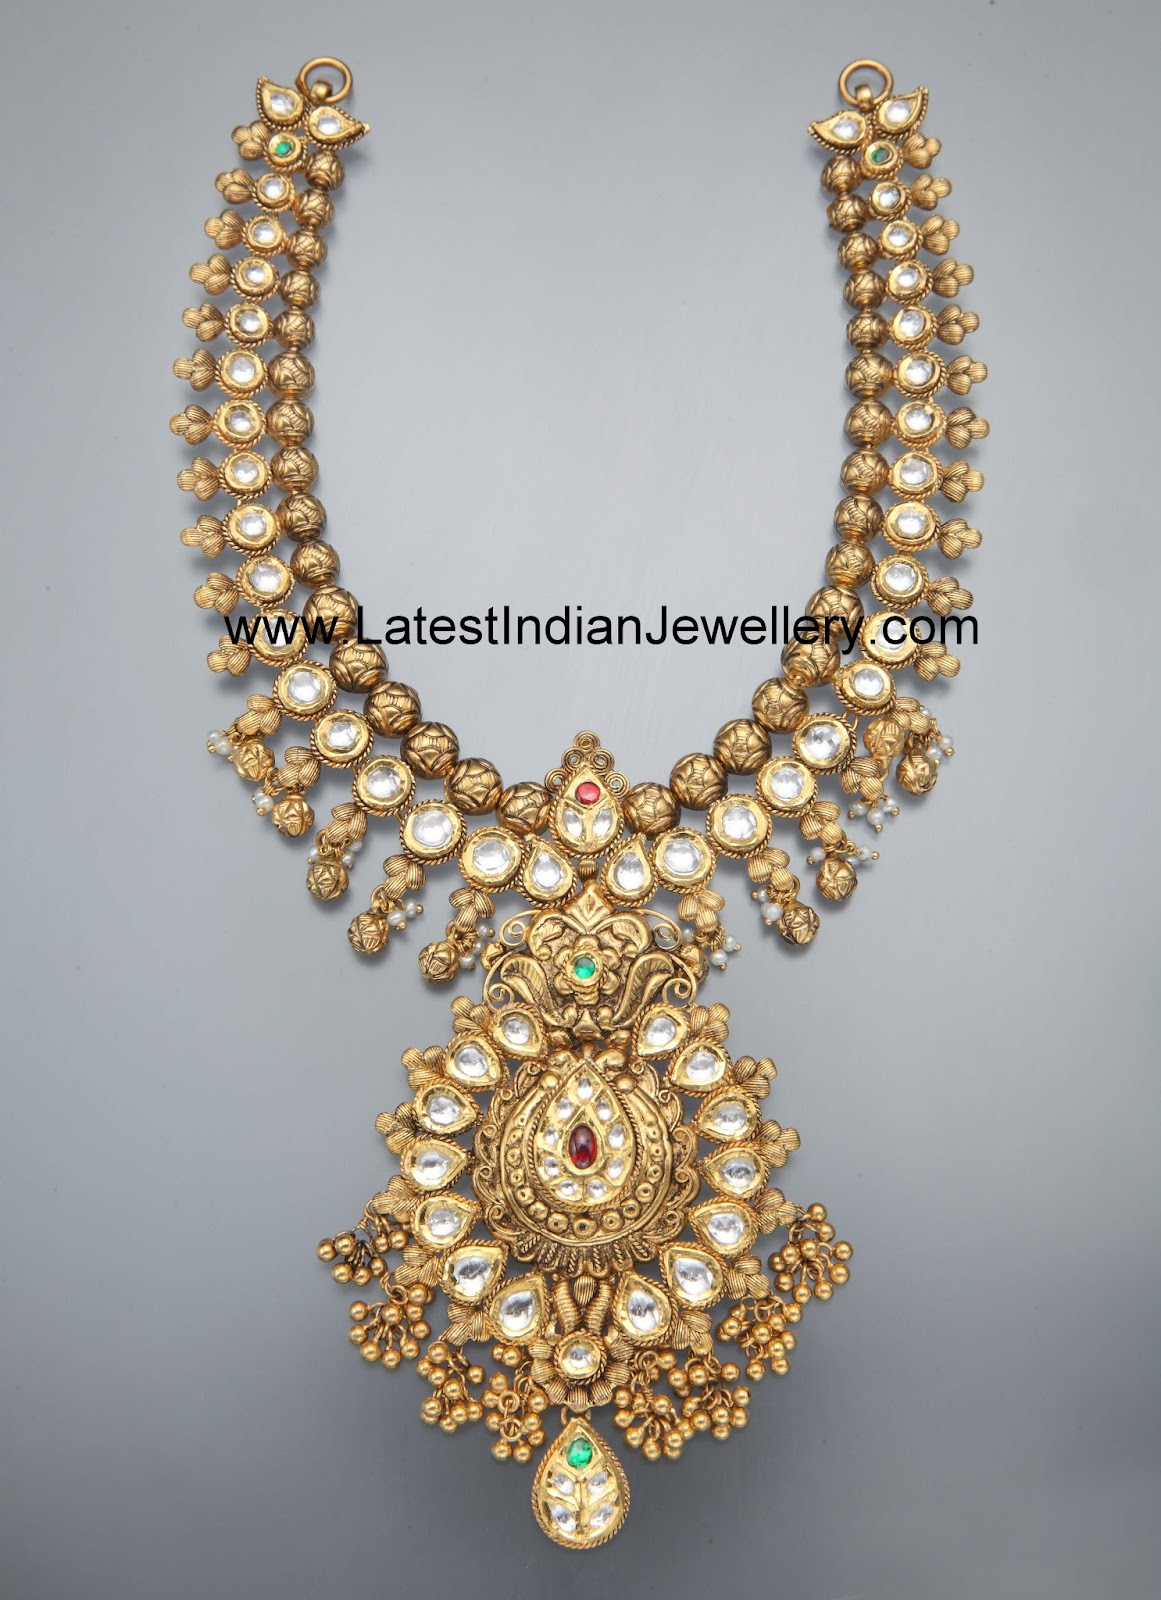 heavy antique kundan necklace approximate weight 110gms